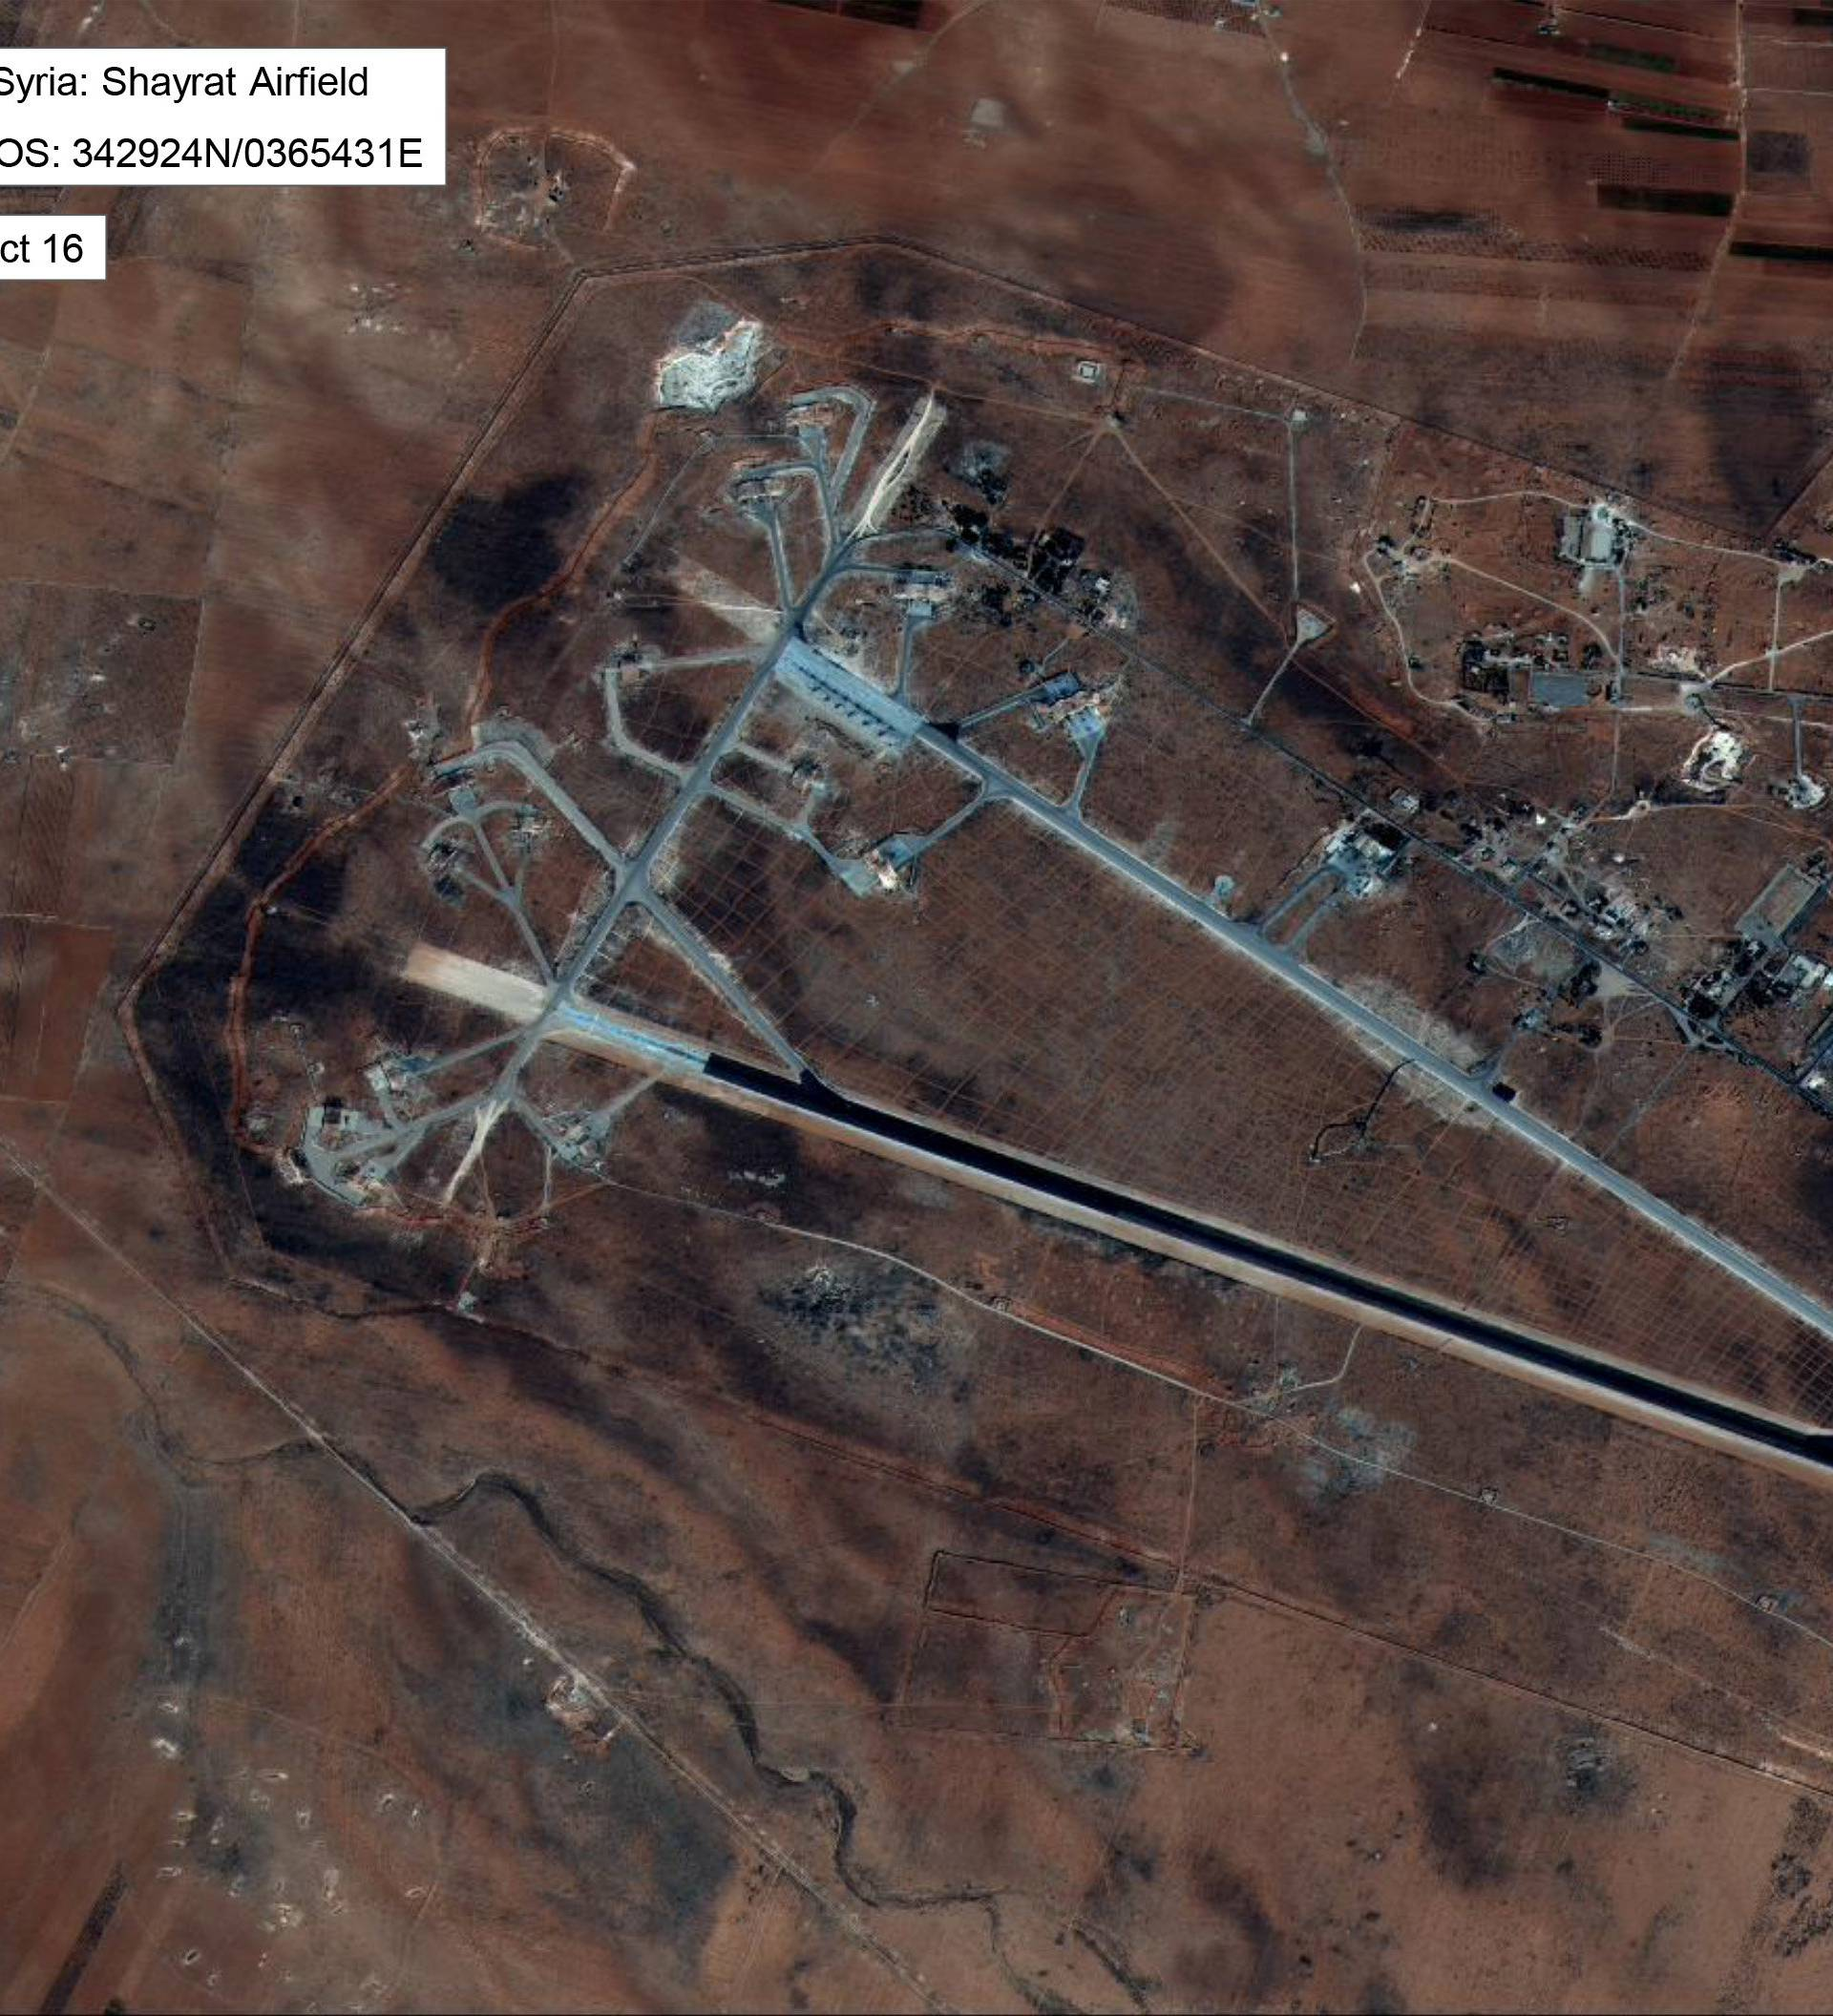 Shayrat Airfield in Homs, Syria is seen in this DigitalGlobe satellite image